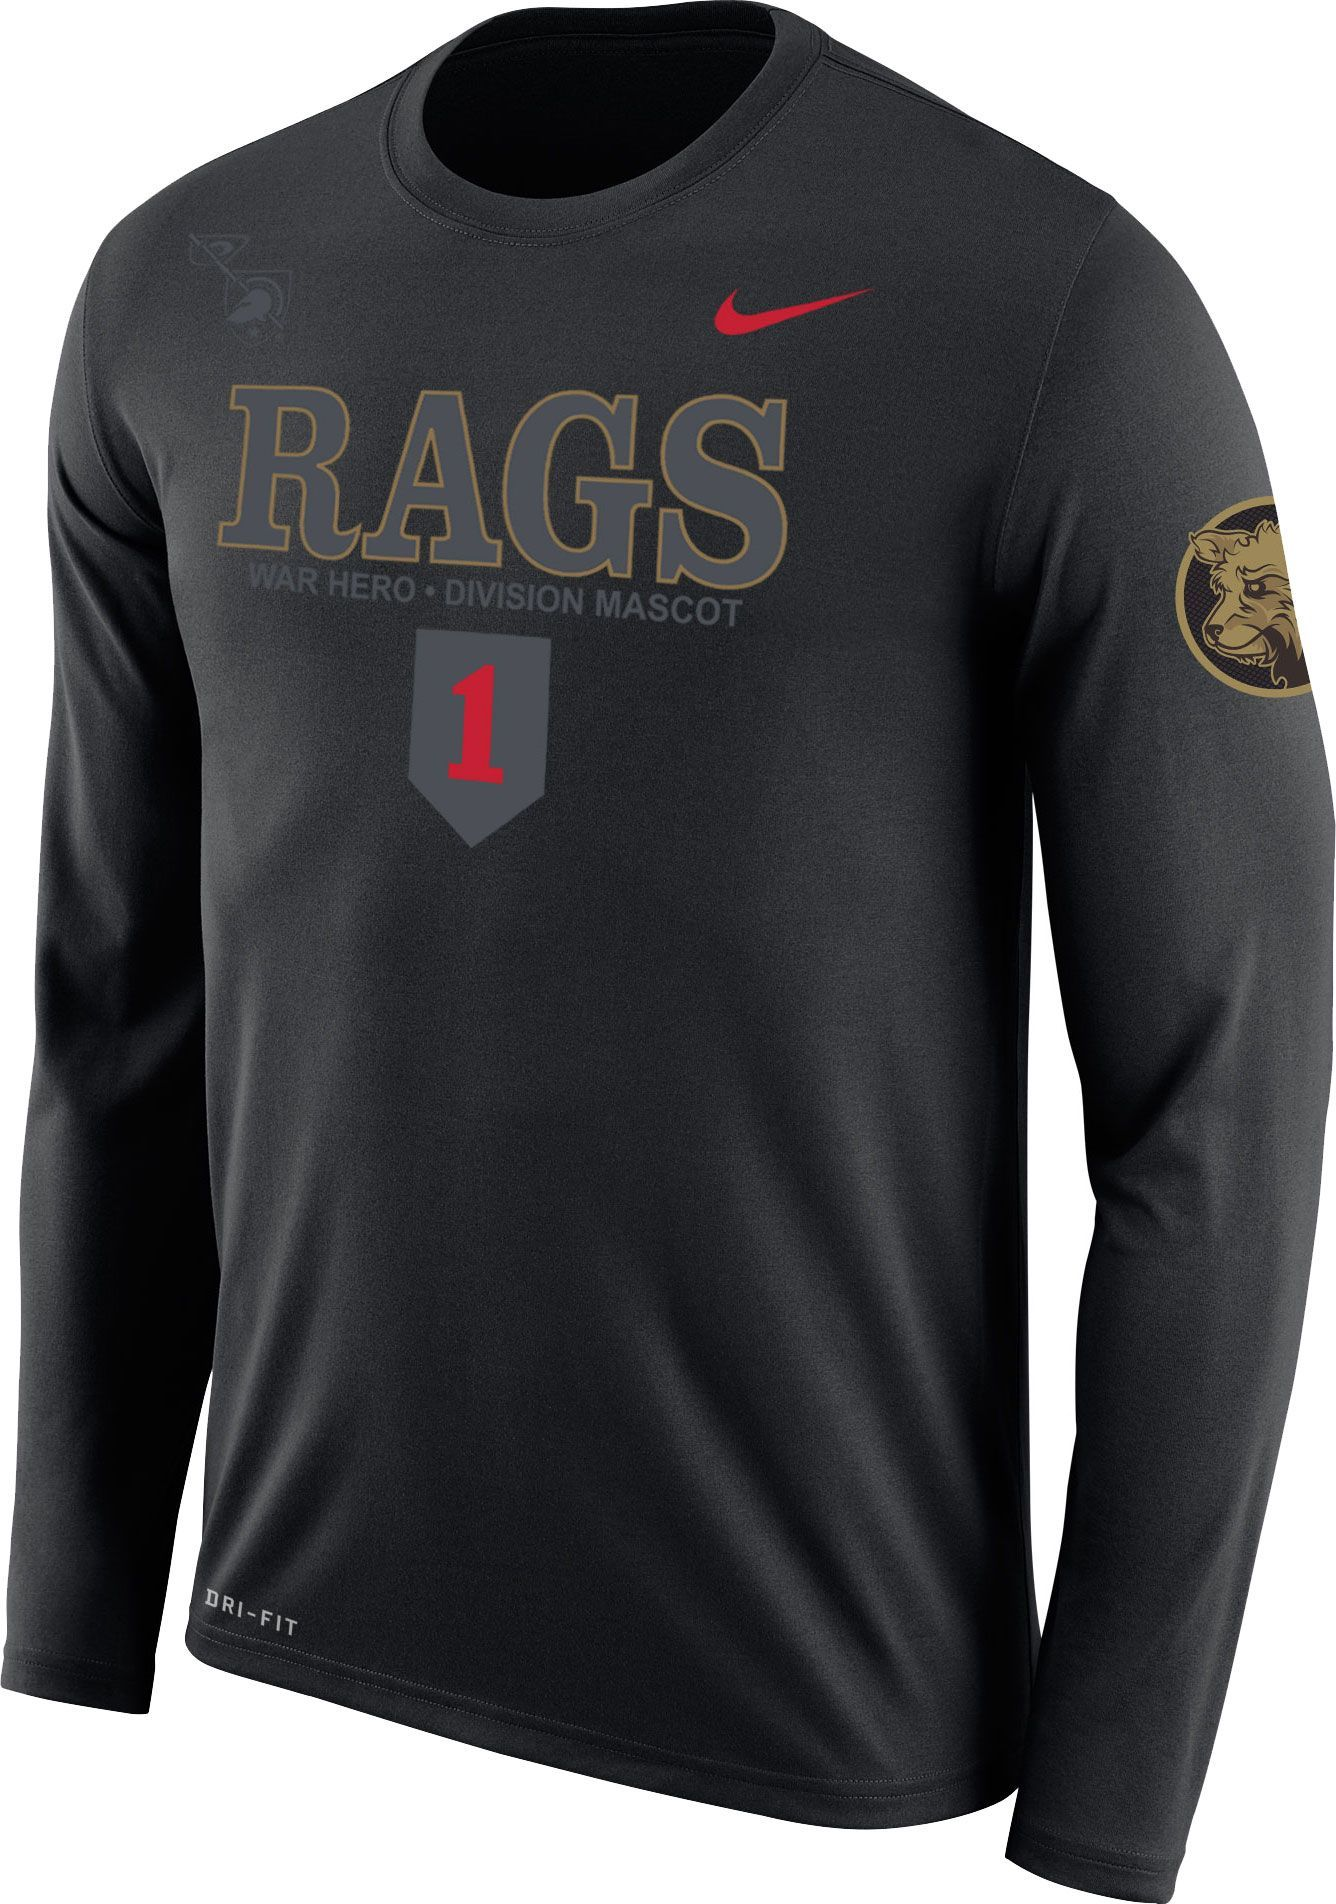 b4775a4e0 Nike Men s Army West Point Black Knights Dri-FIT Rival Army Black Long  Sleeve Tee